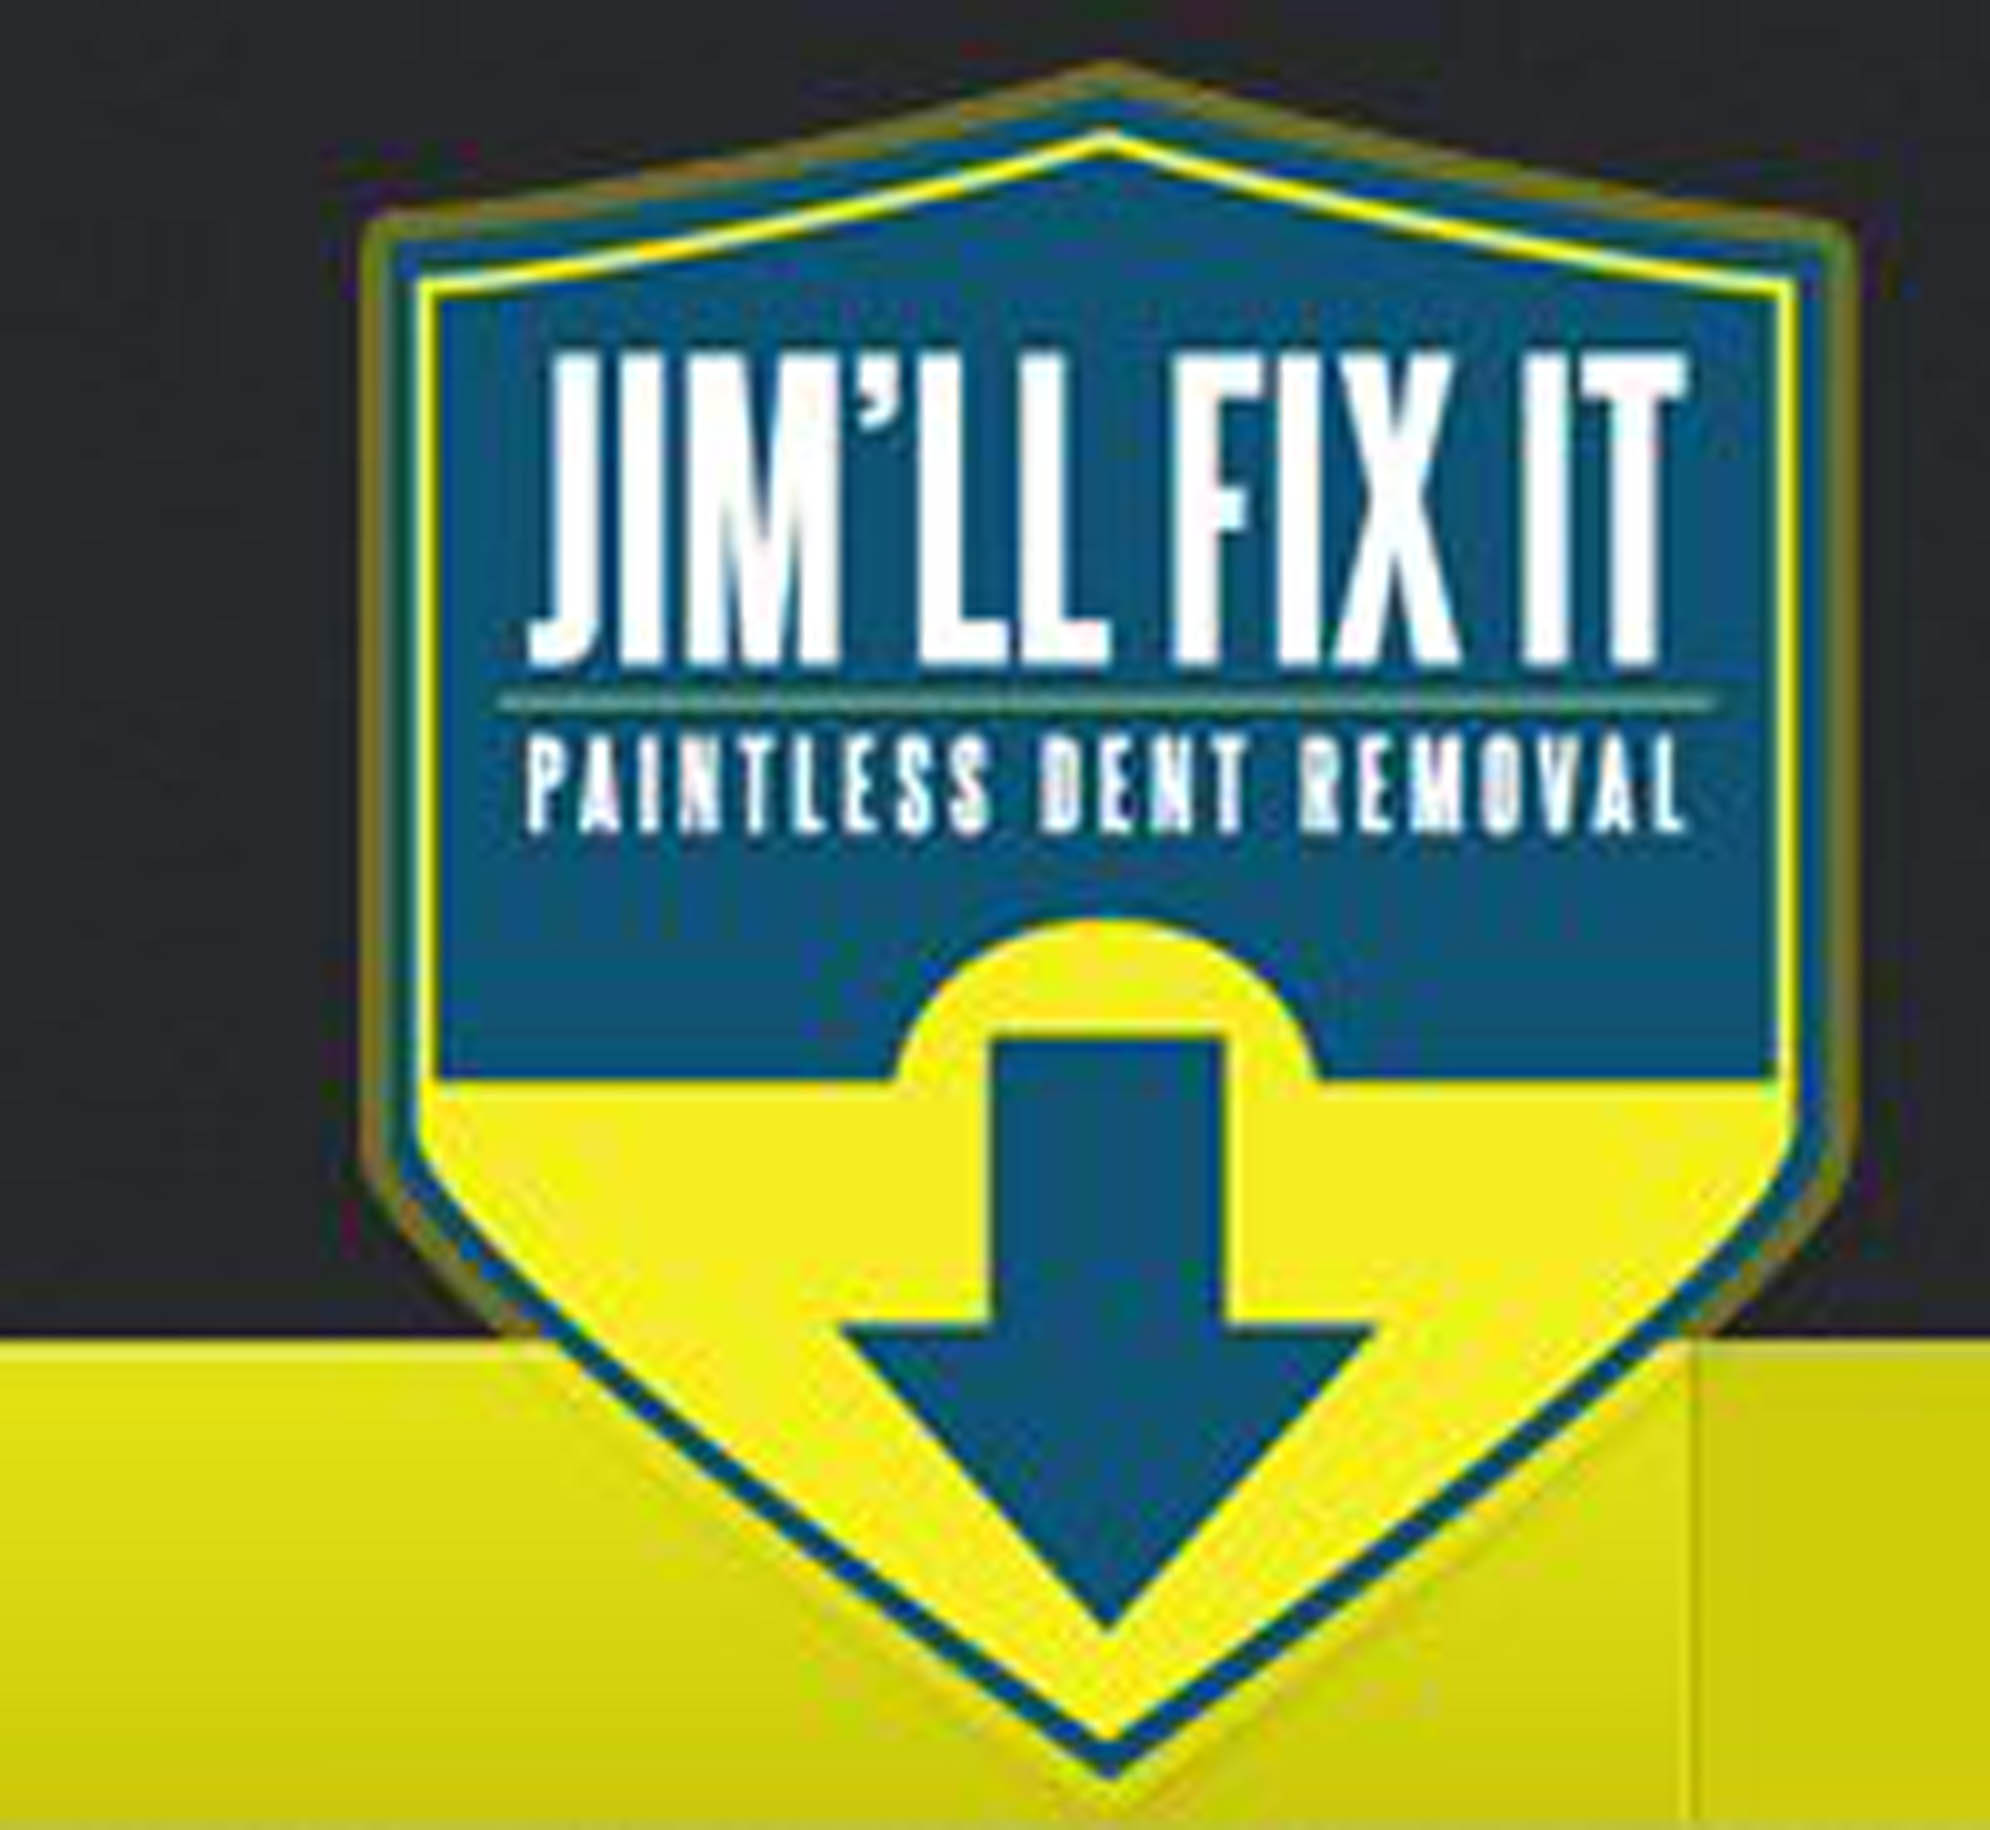 The car repair firm called 'Jim'll Fix It' logo. The business has been booming after the Jimmy Savile child sex scandal